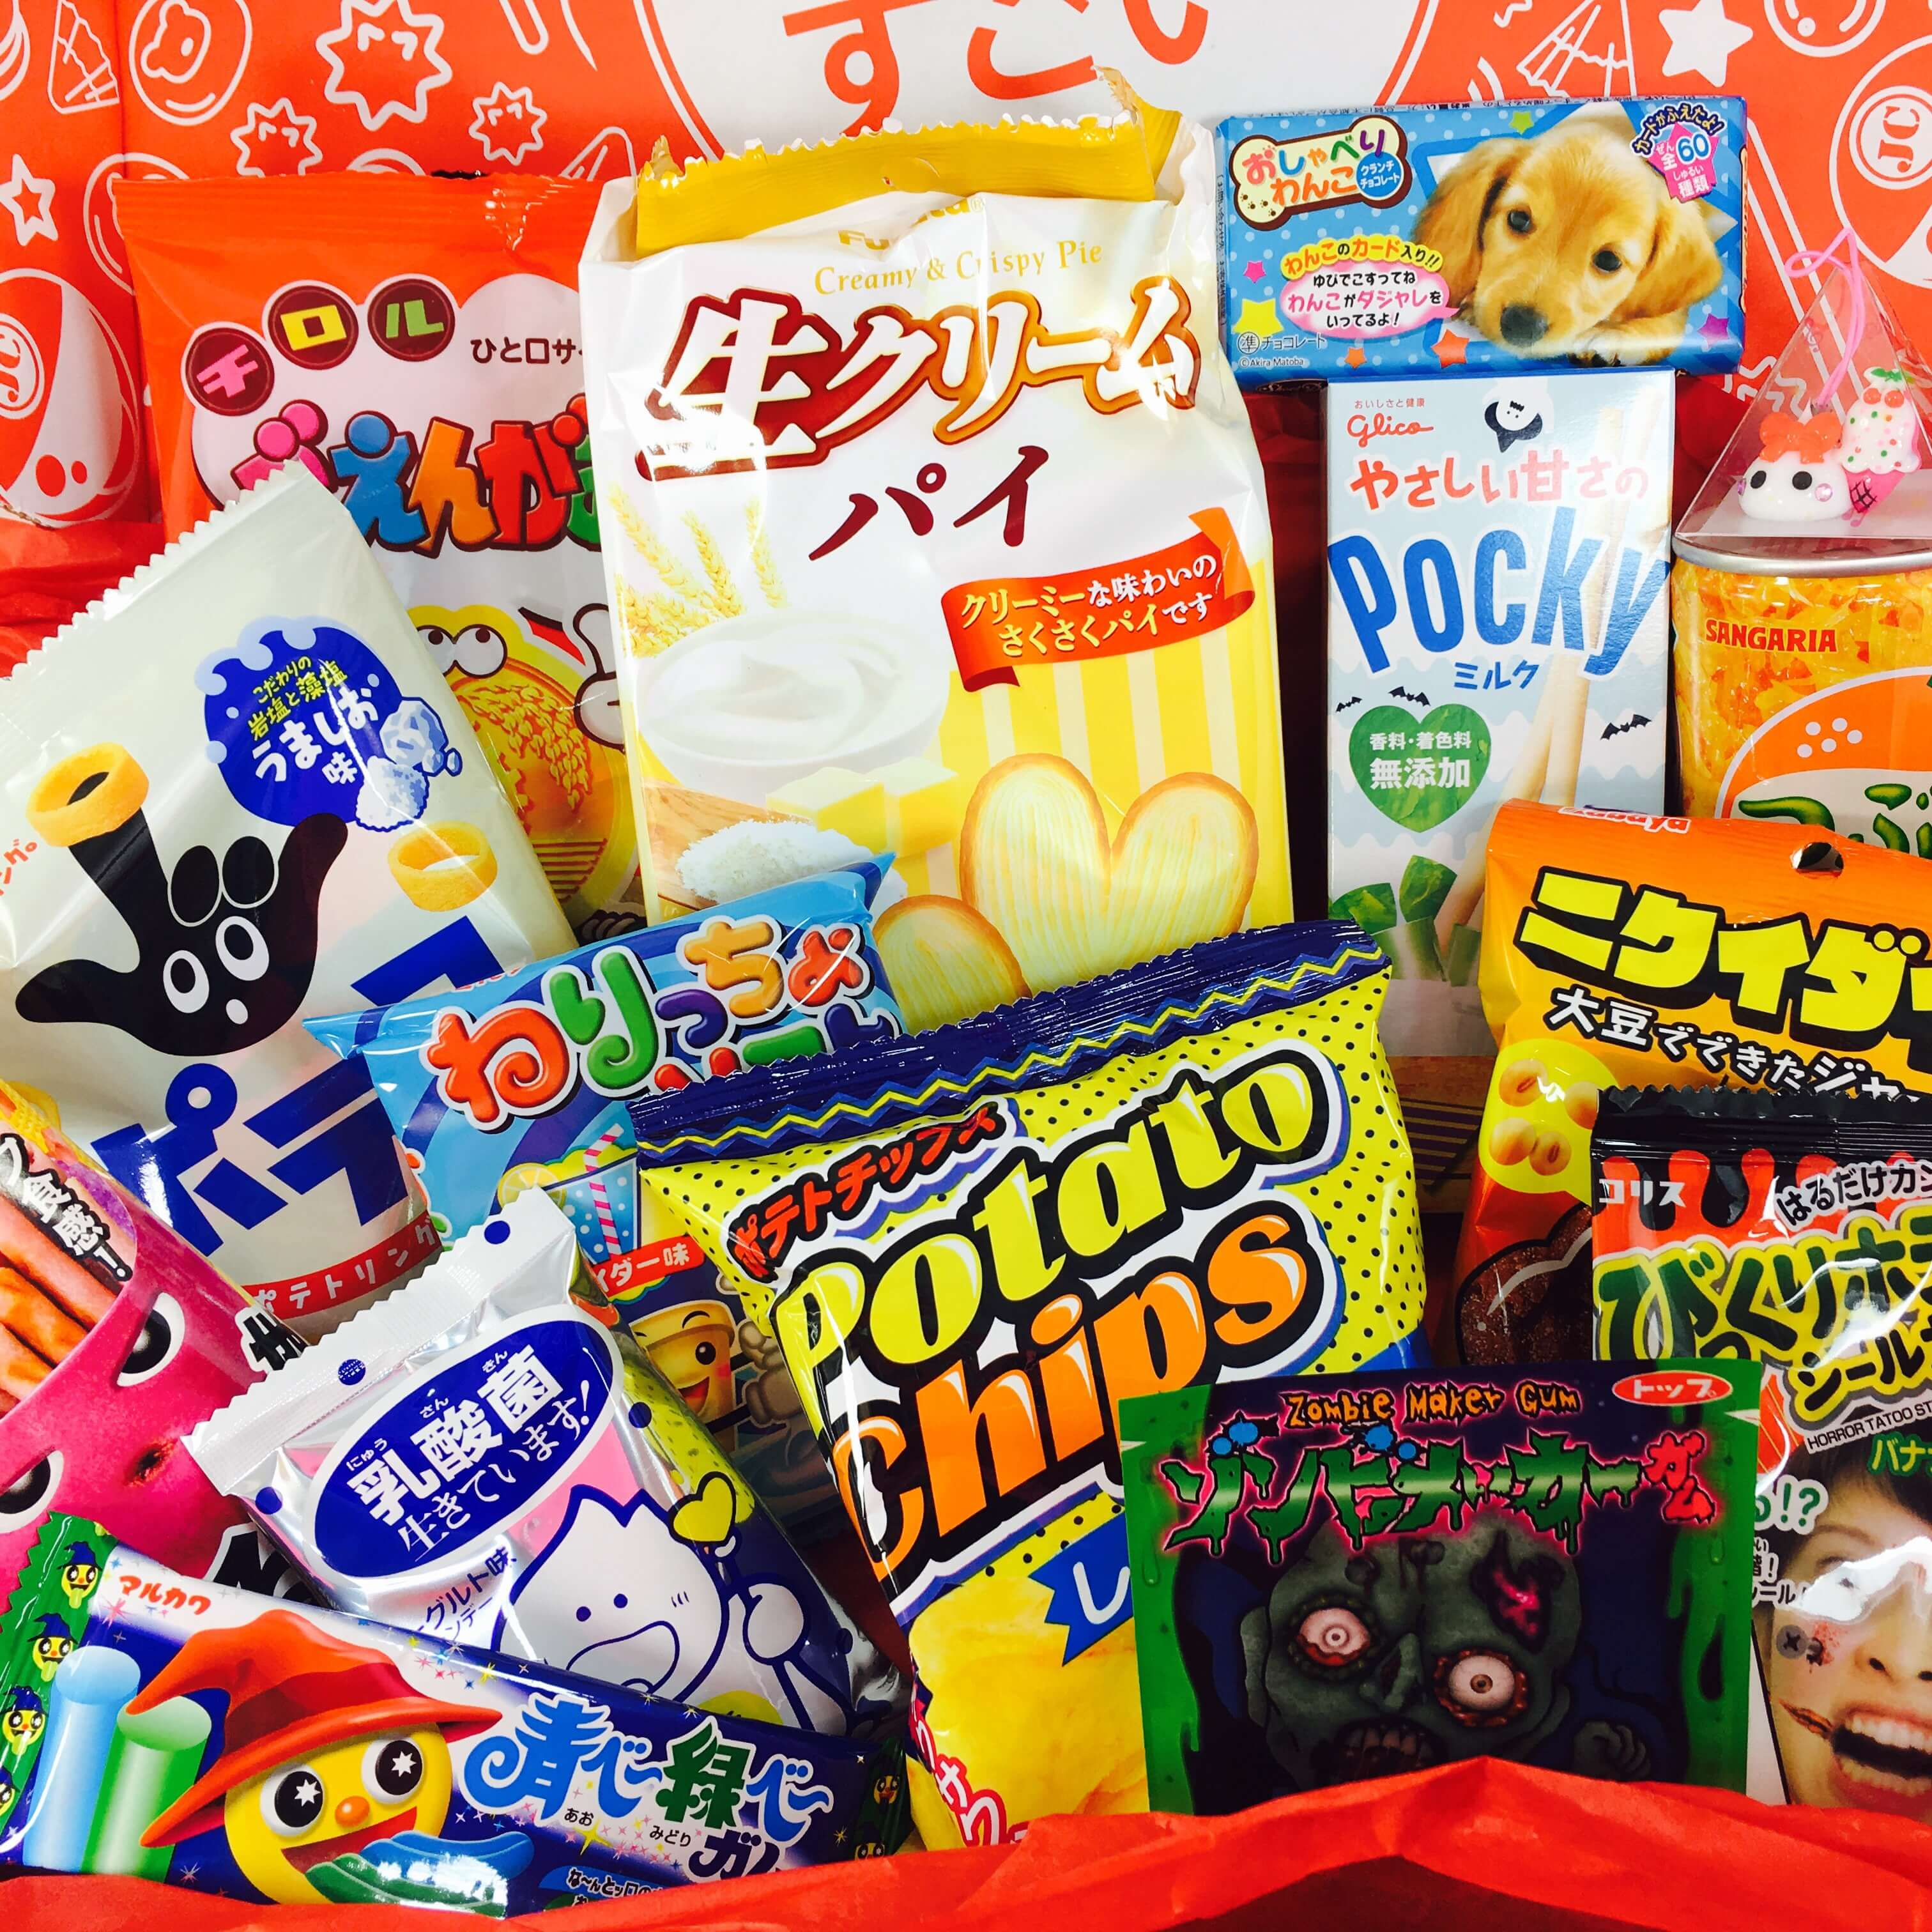 Japan Crate October 2016 Subscription Box Review + Coupon